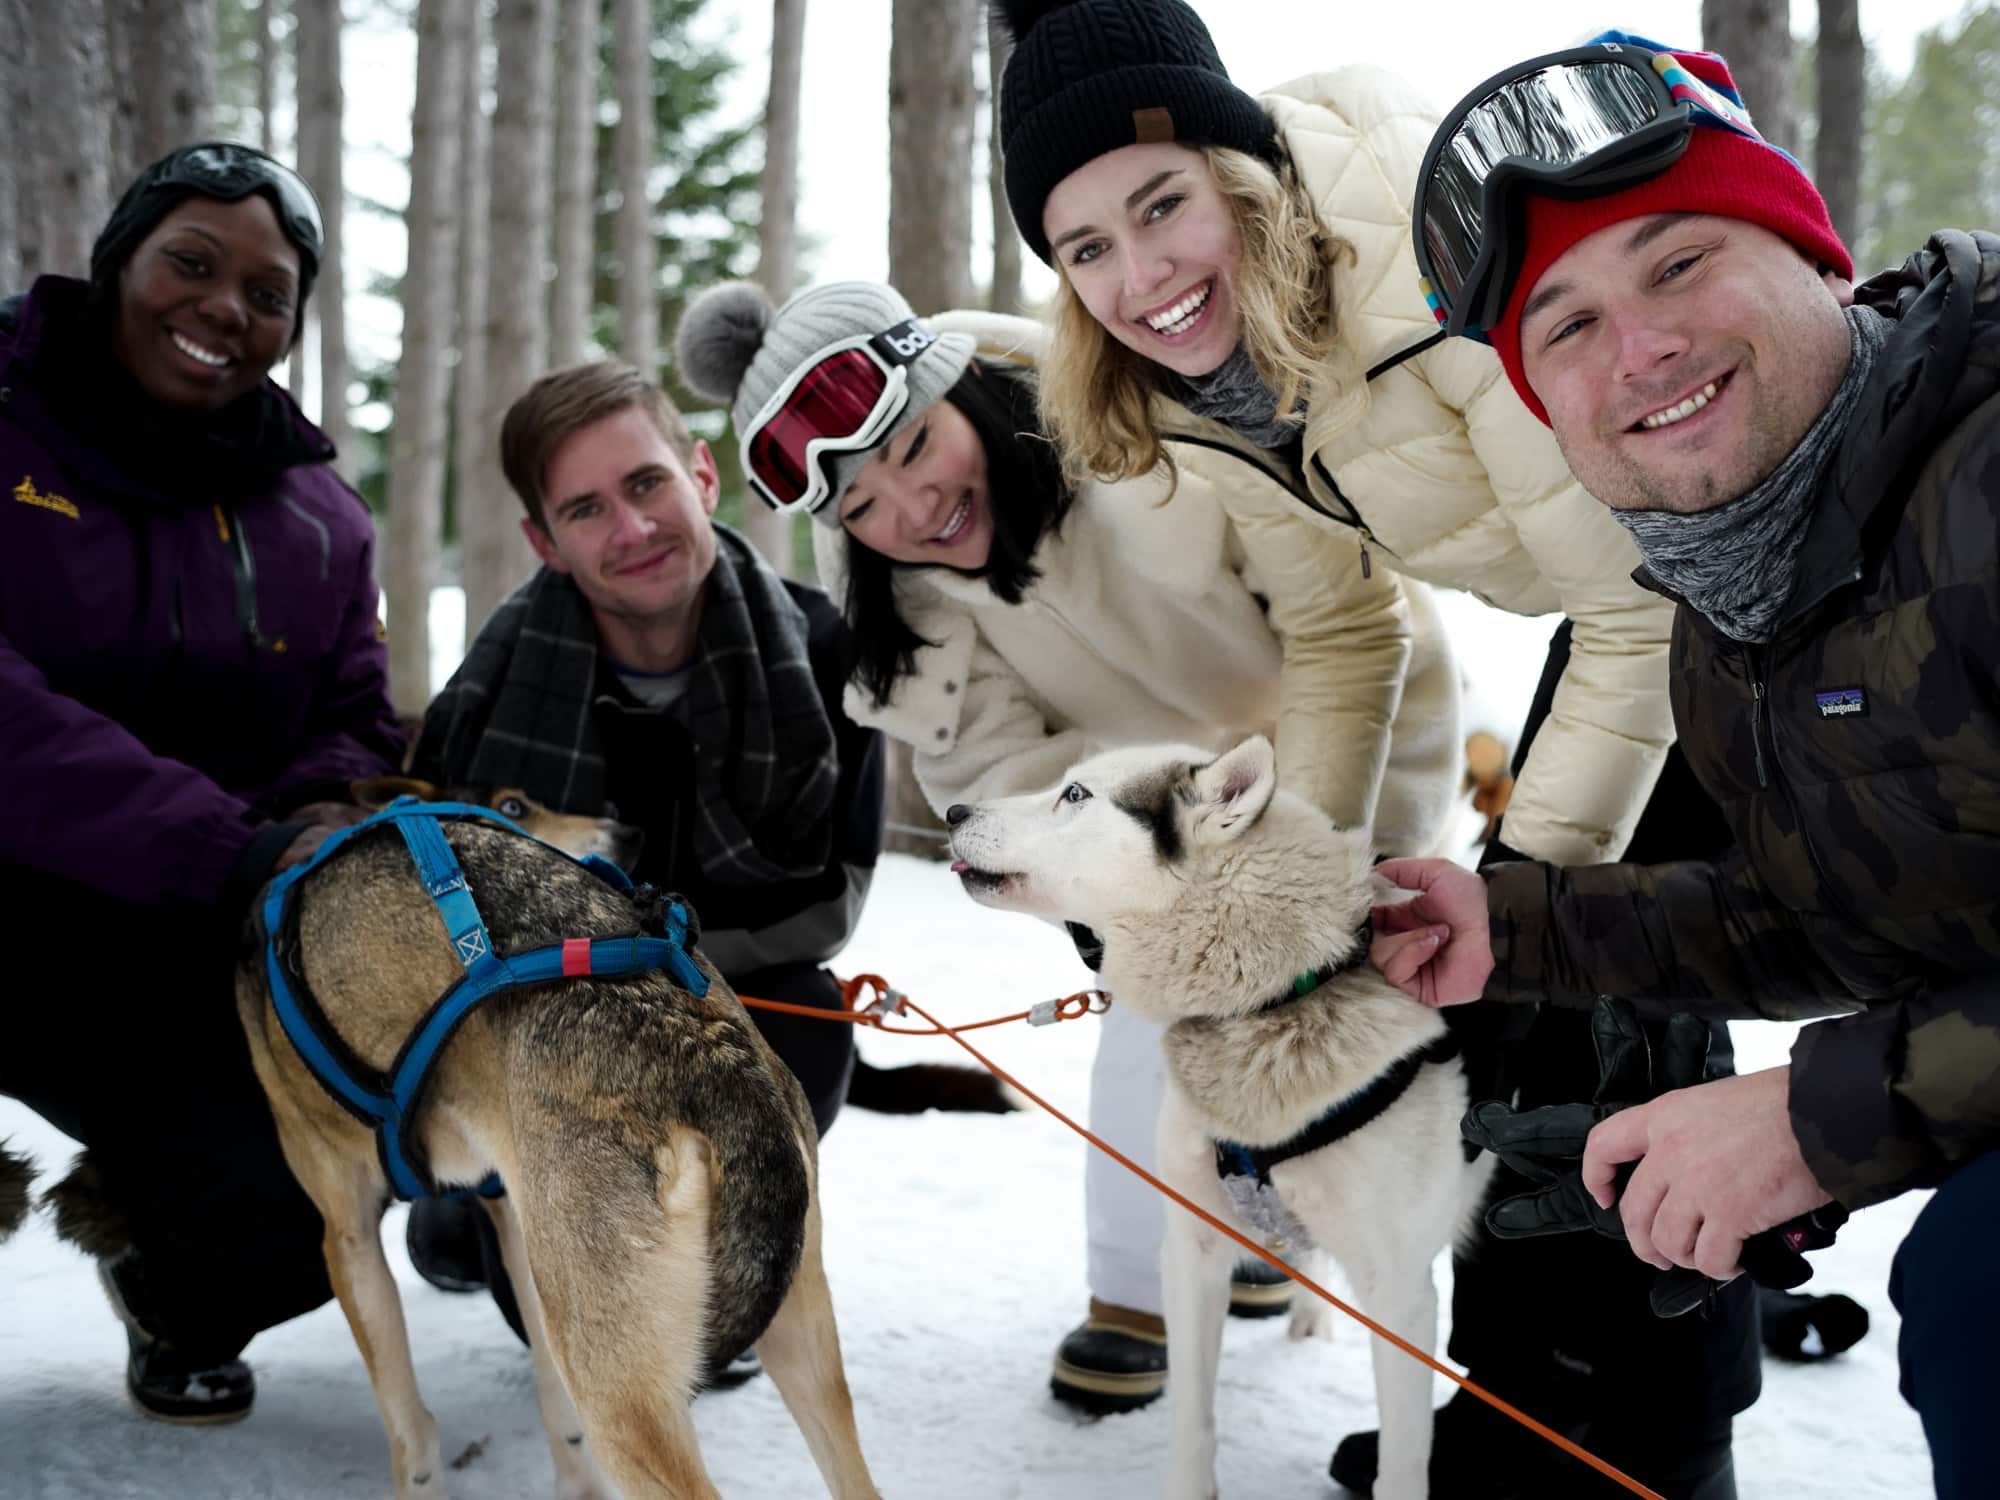 A day spent dog sledding with friends while in Canada.